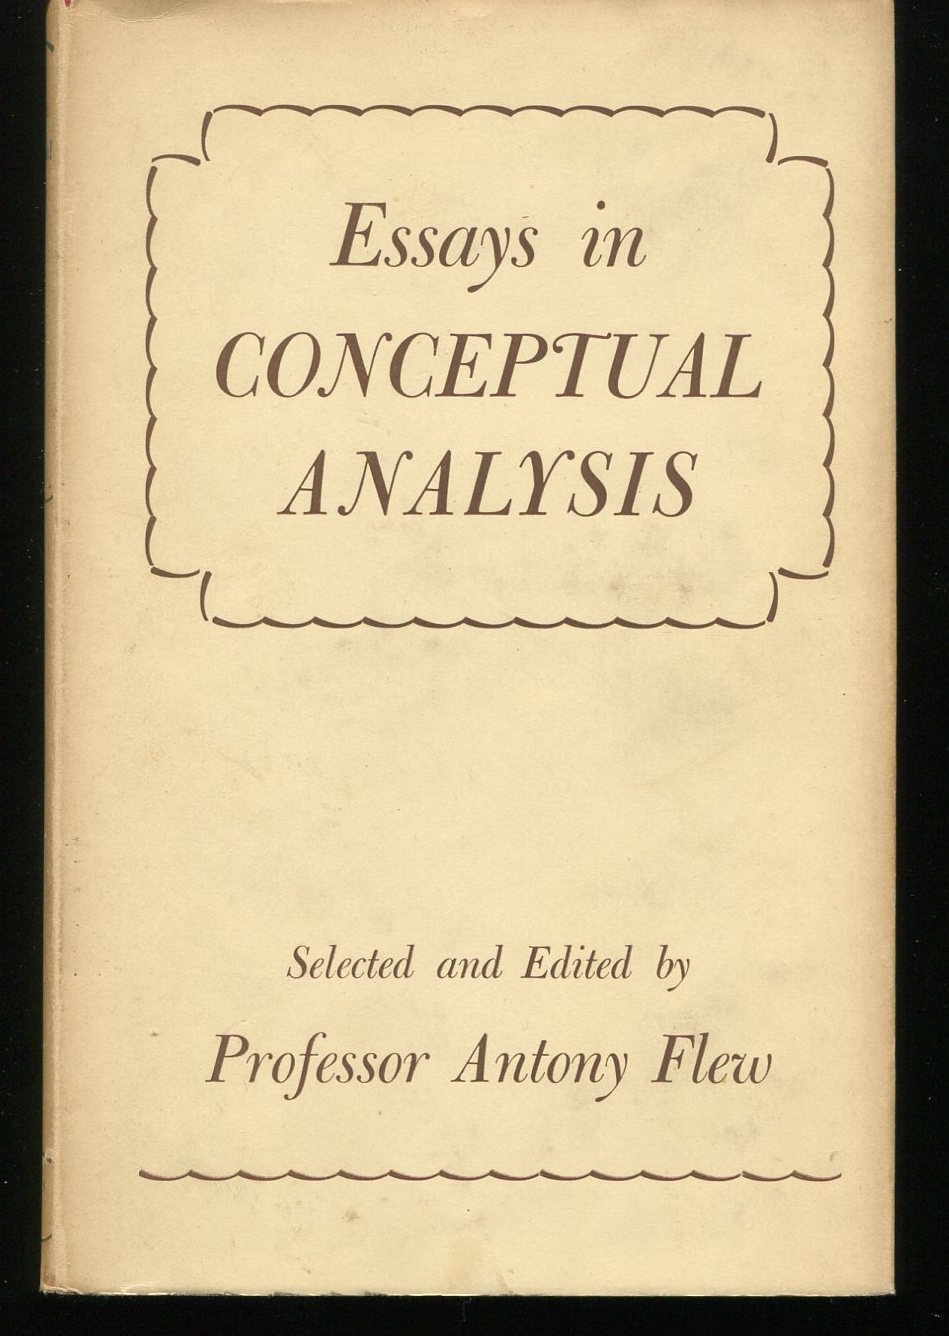 Essays in Conceptual Analysis. H. Brotman, E. Daitz, S. Toulmin et al.